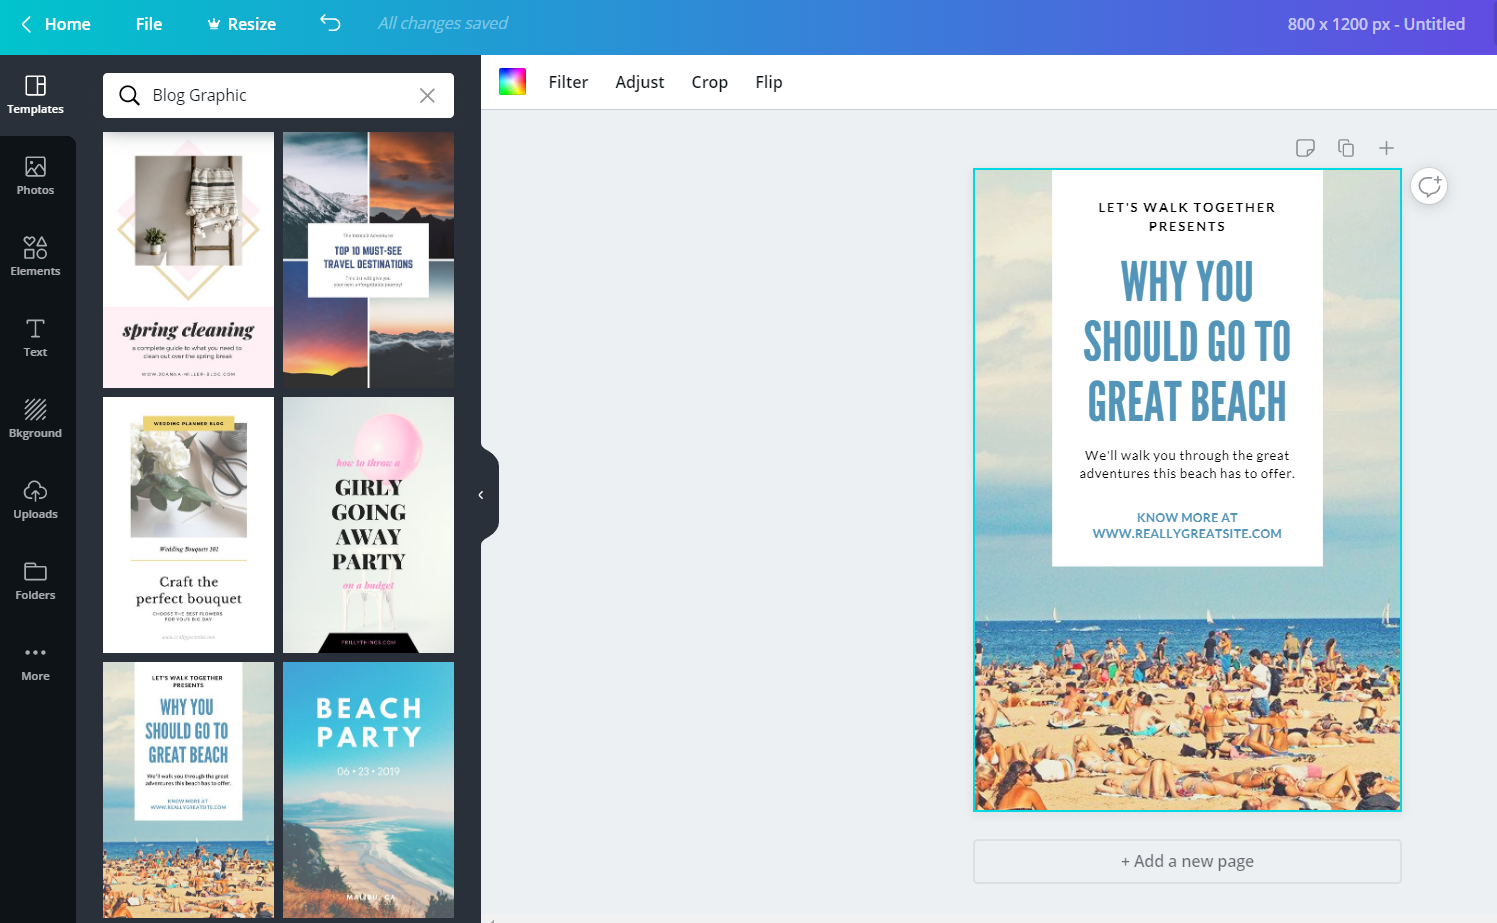 Canva is a fantastic tool for creating images for your blog posts